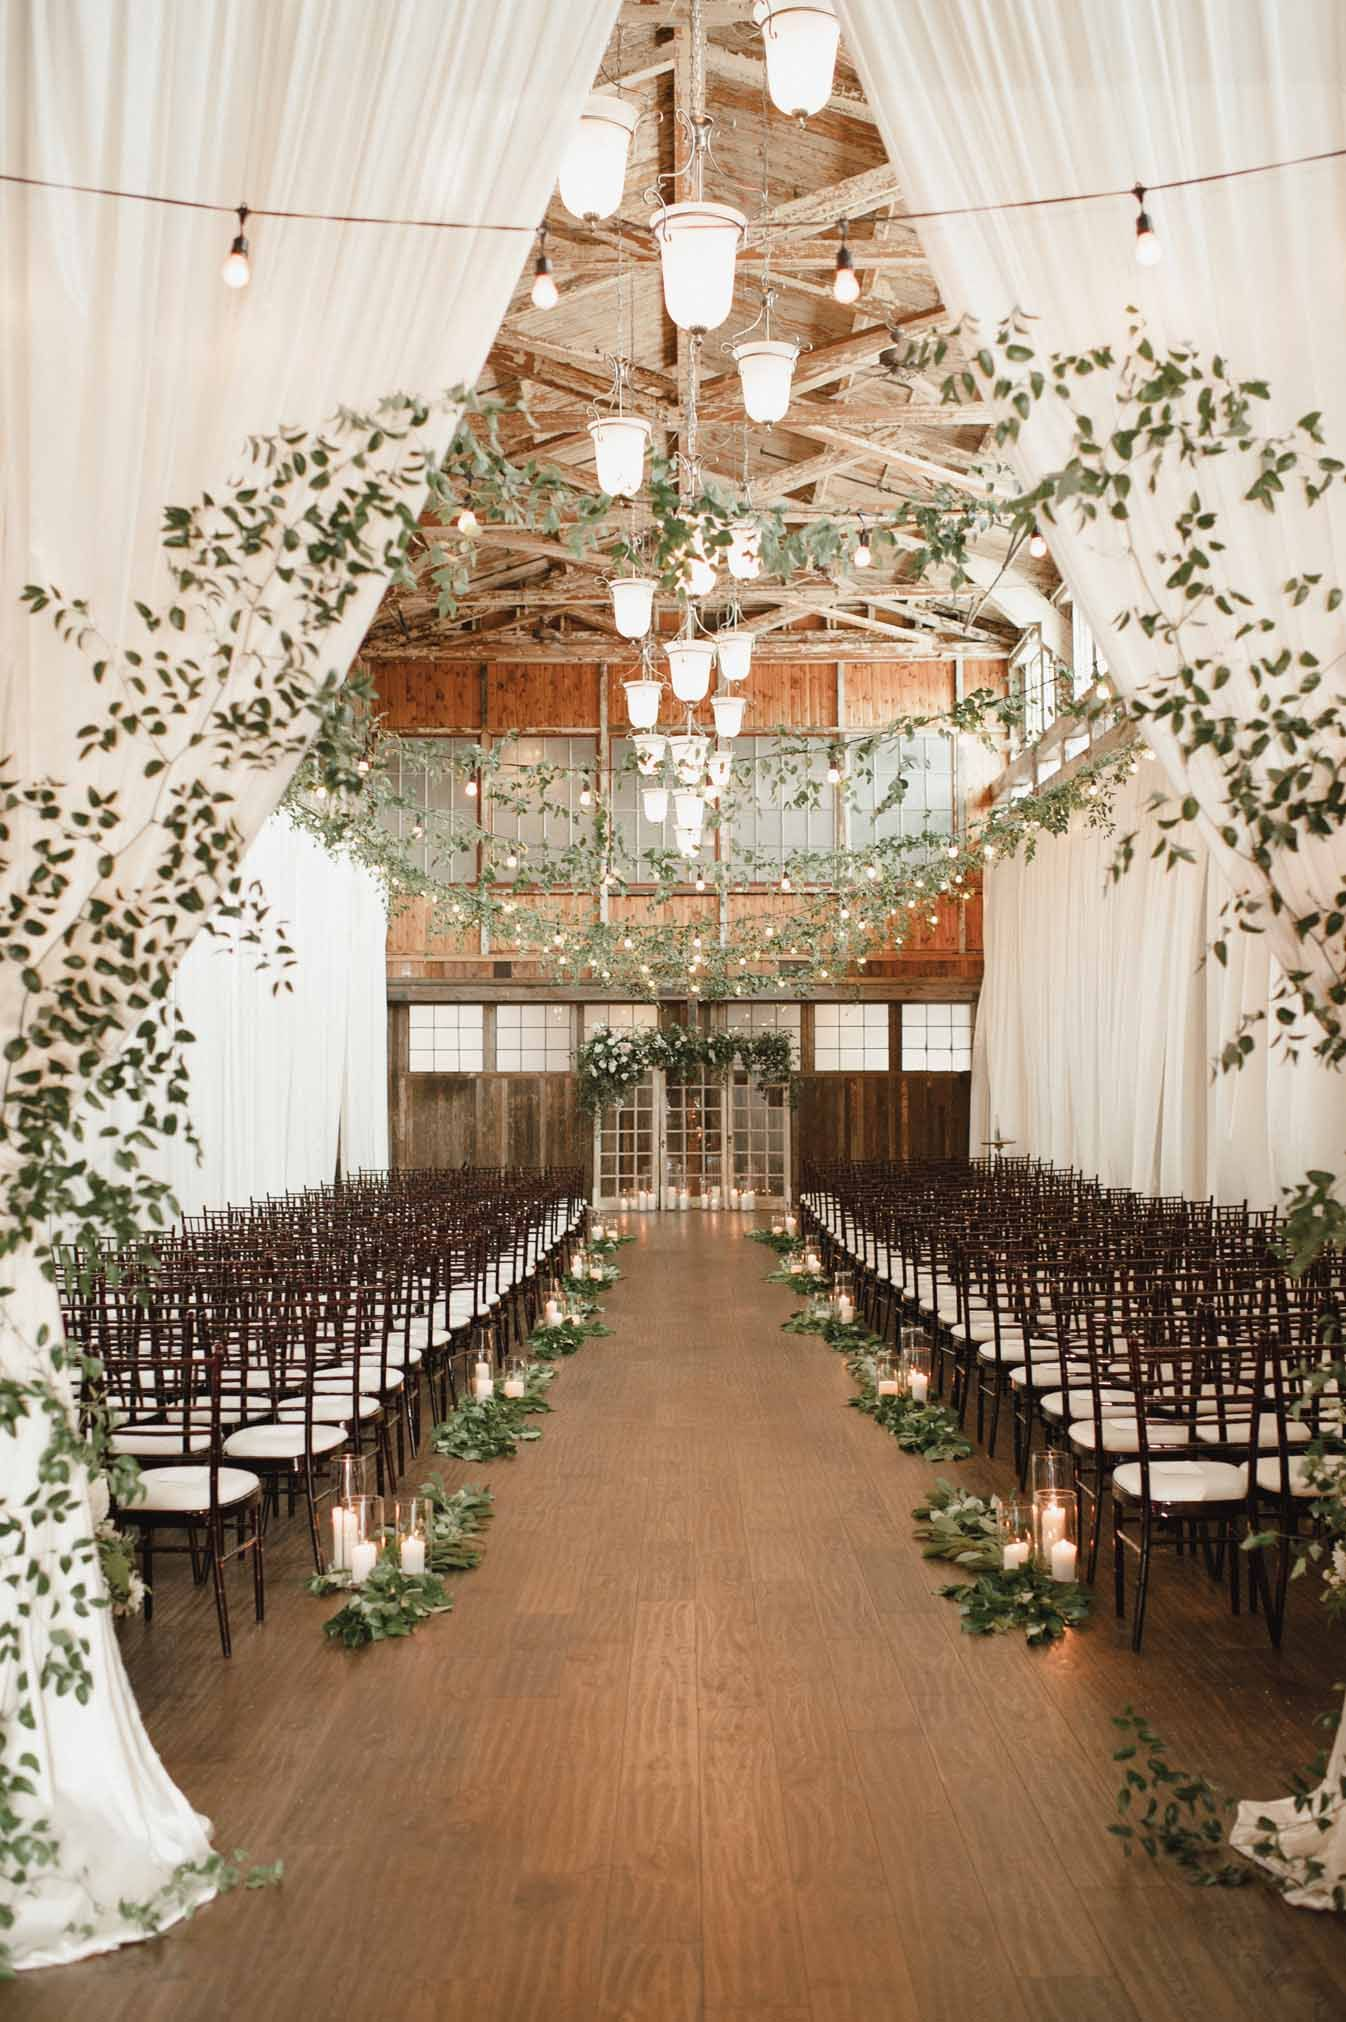 Simple Ways To Make Your Wedding Feel Like A Garden In 2020 Sodo Park Wedding Seattle Wedding Venues Sodo Park